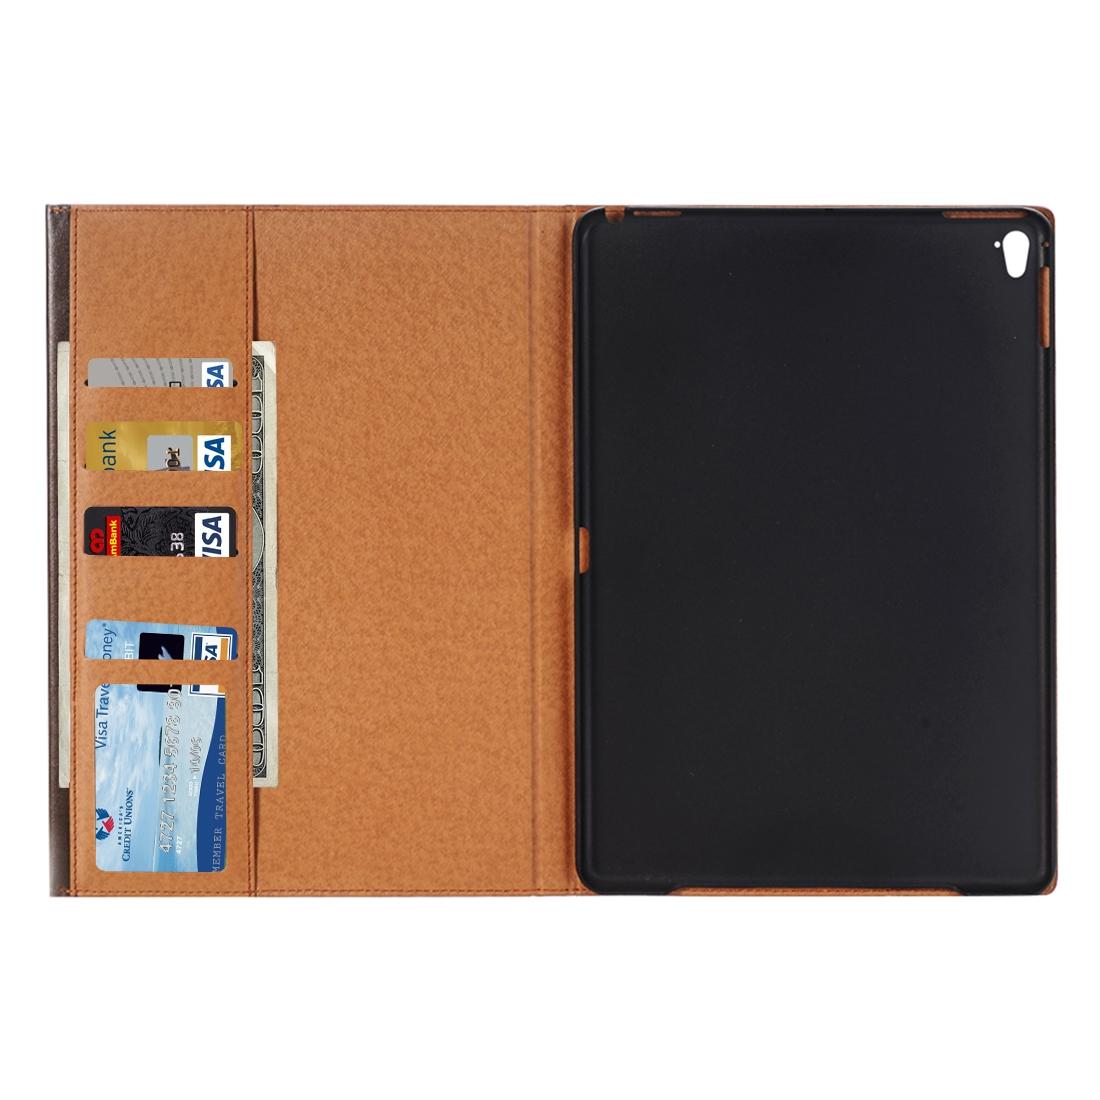 Book Style Leather iPad Air 2 Case (9.7 Inch), Slim Profile (Brown)